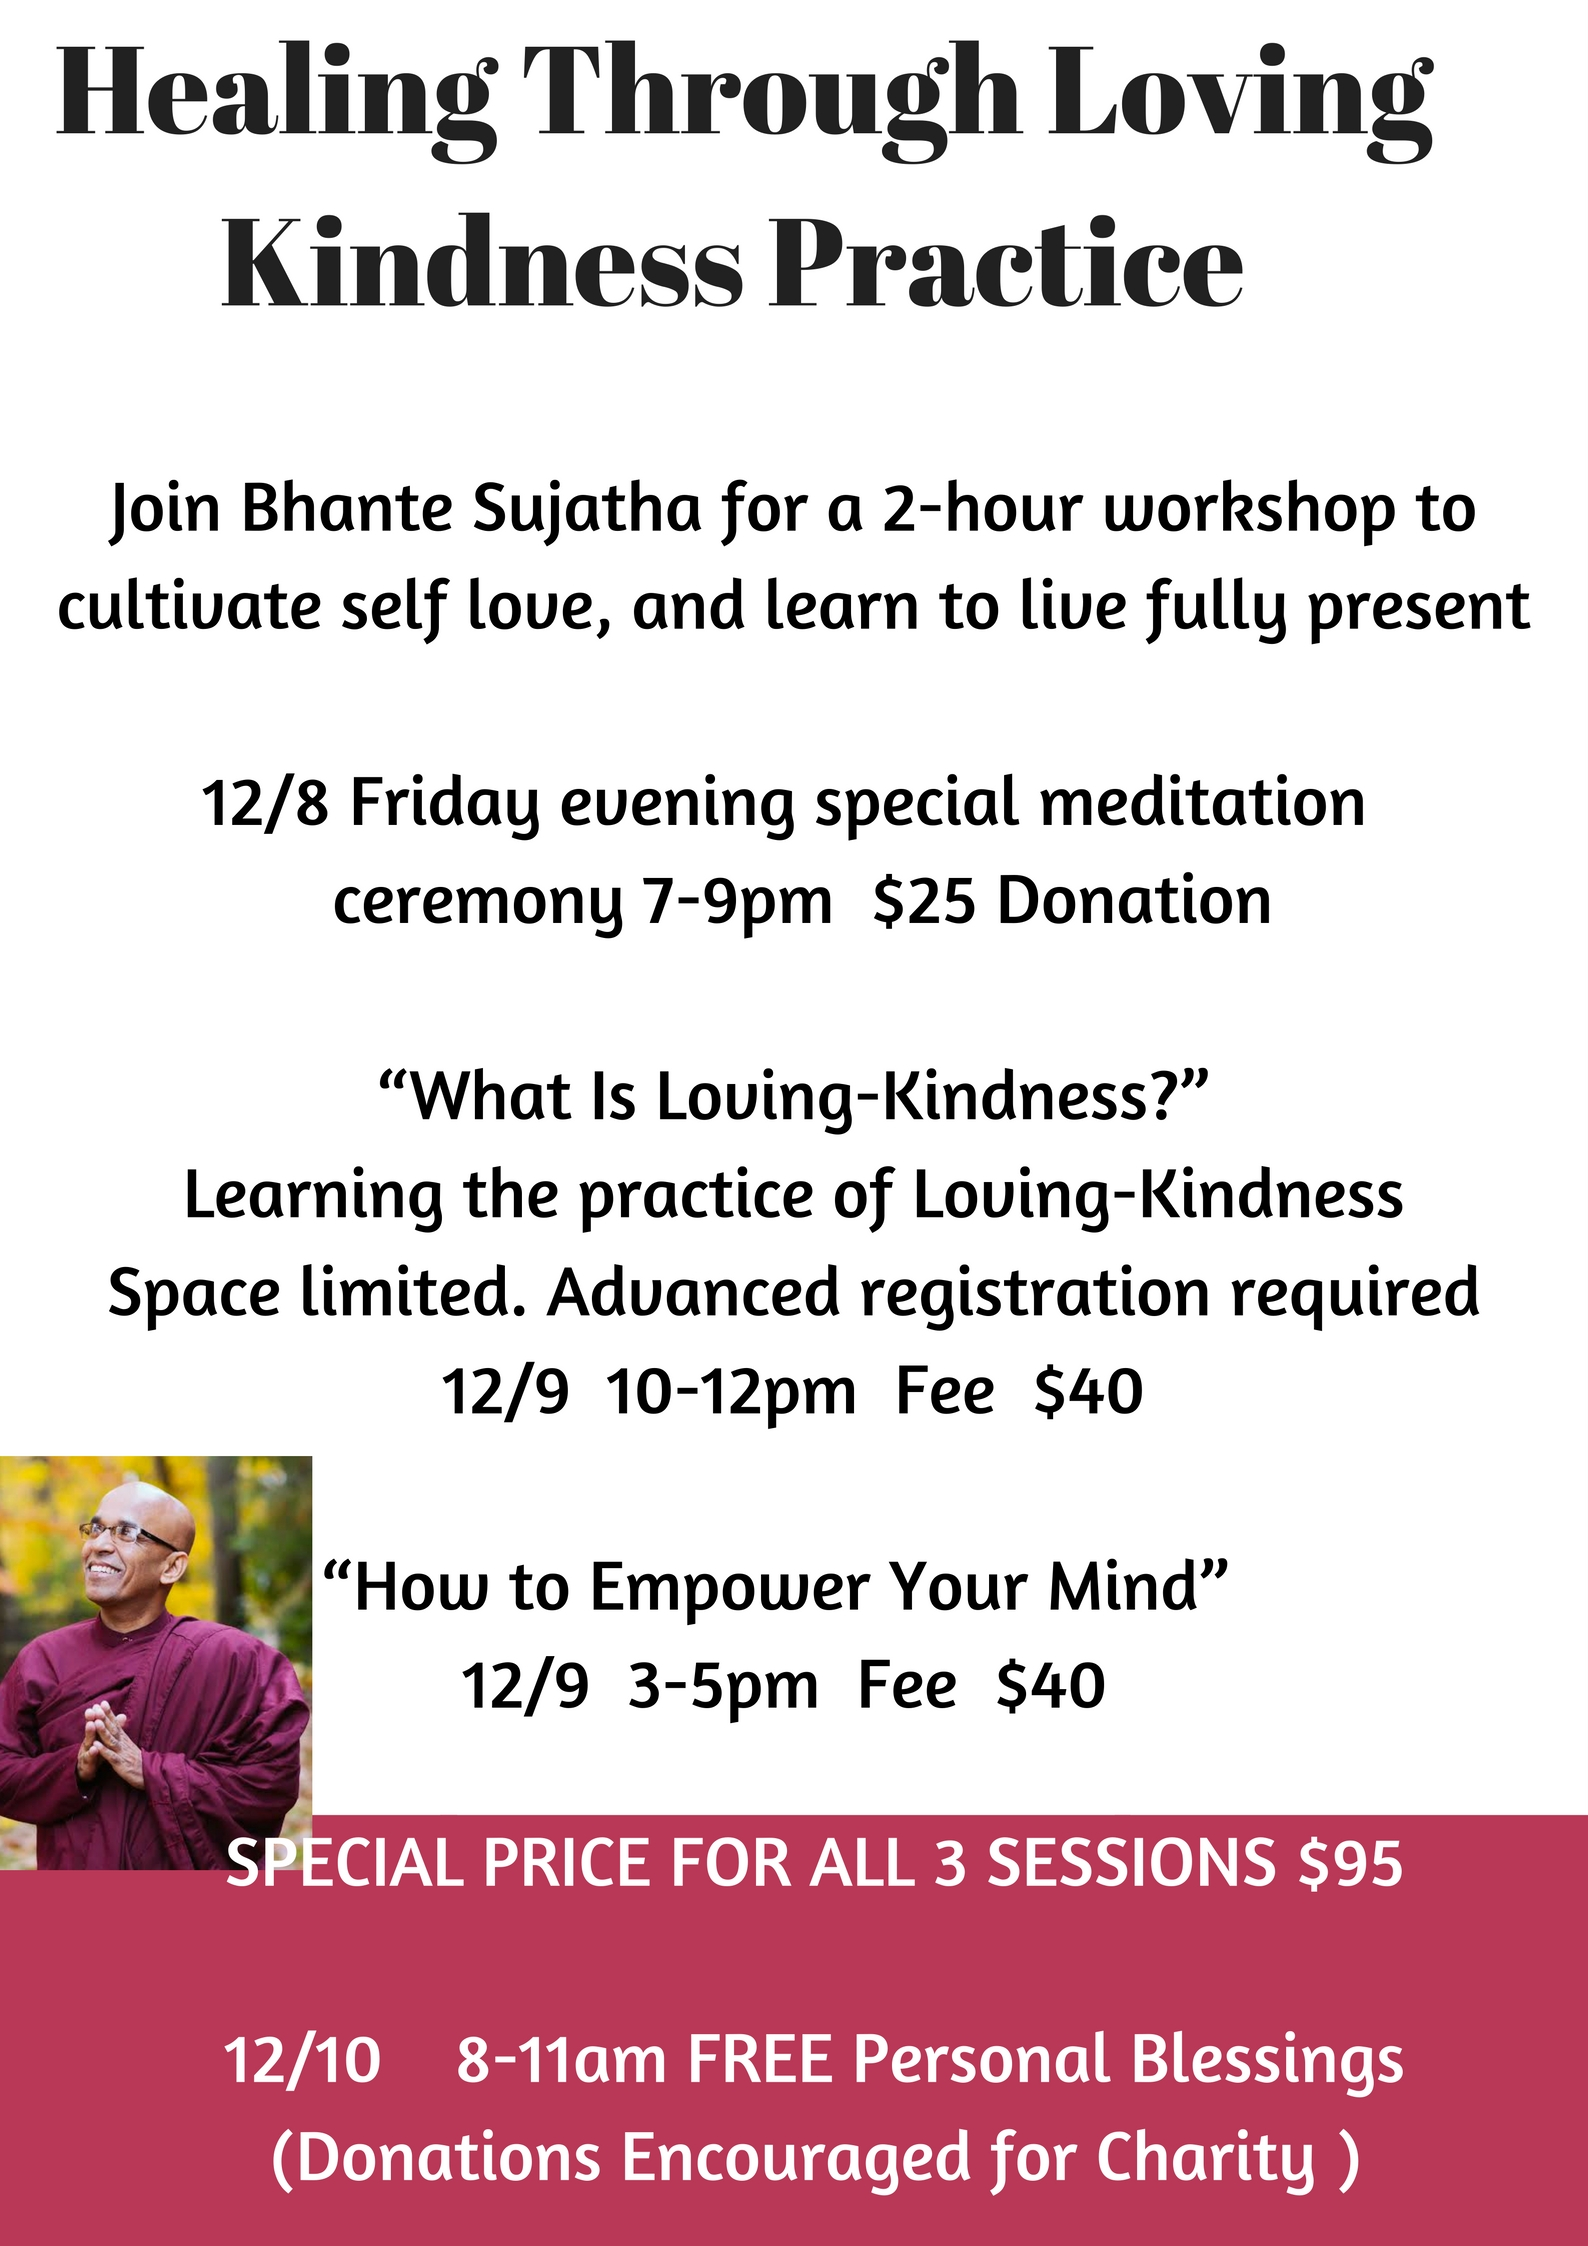 Copy of Healing Through Loving Kindness Practice with Bhante SujathaConnect with your natural healing power with the gentle guid.jpg